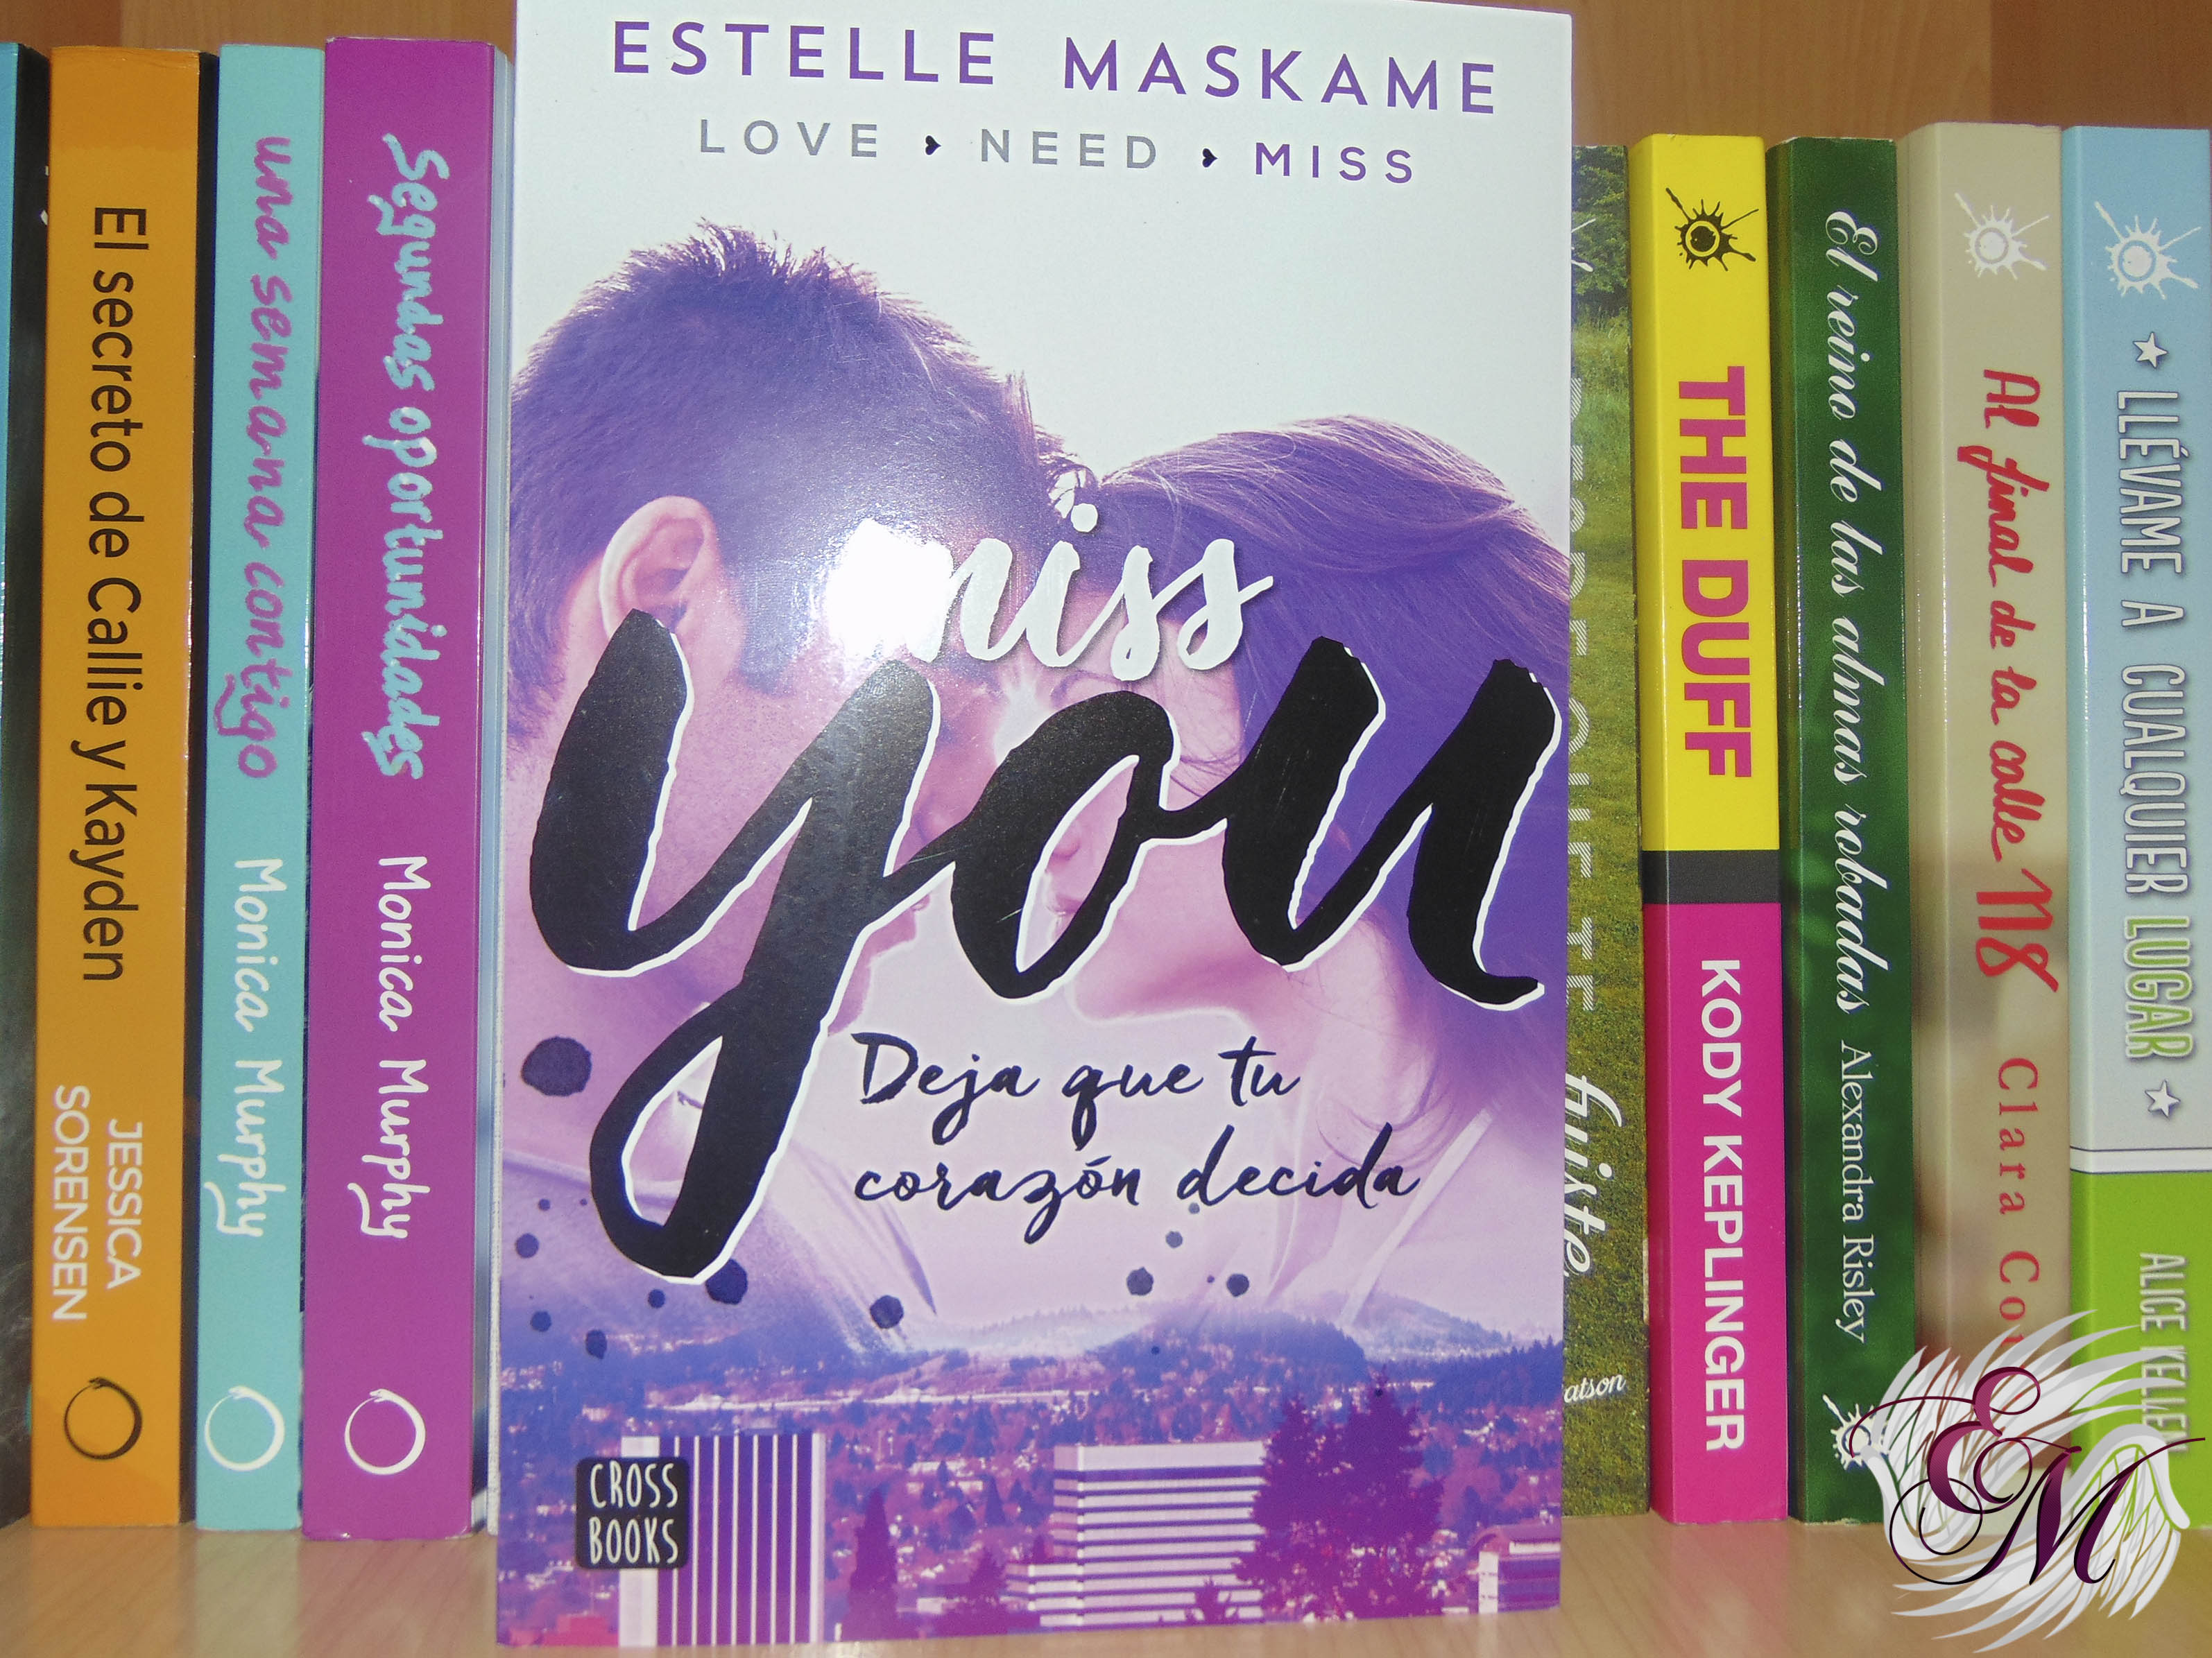 Miss you, de Estelle Maskame - Reseña